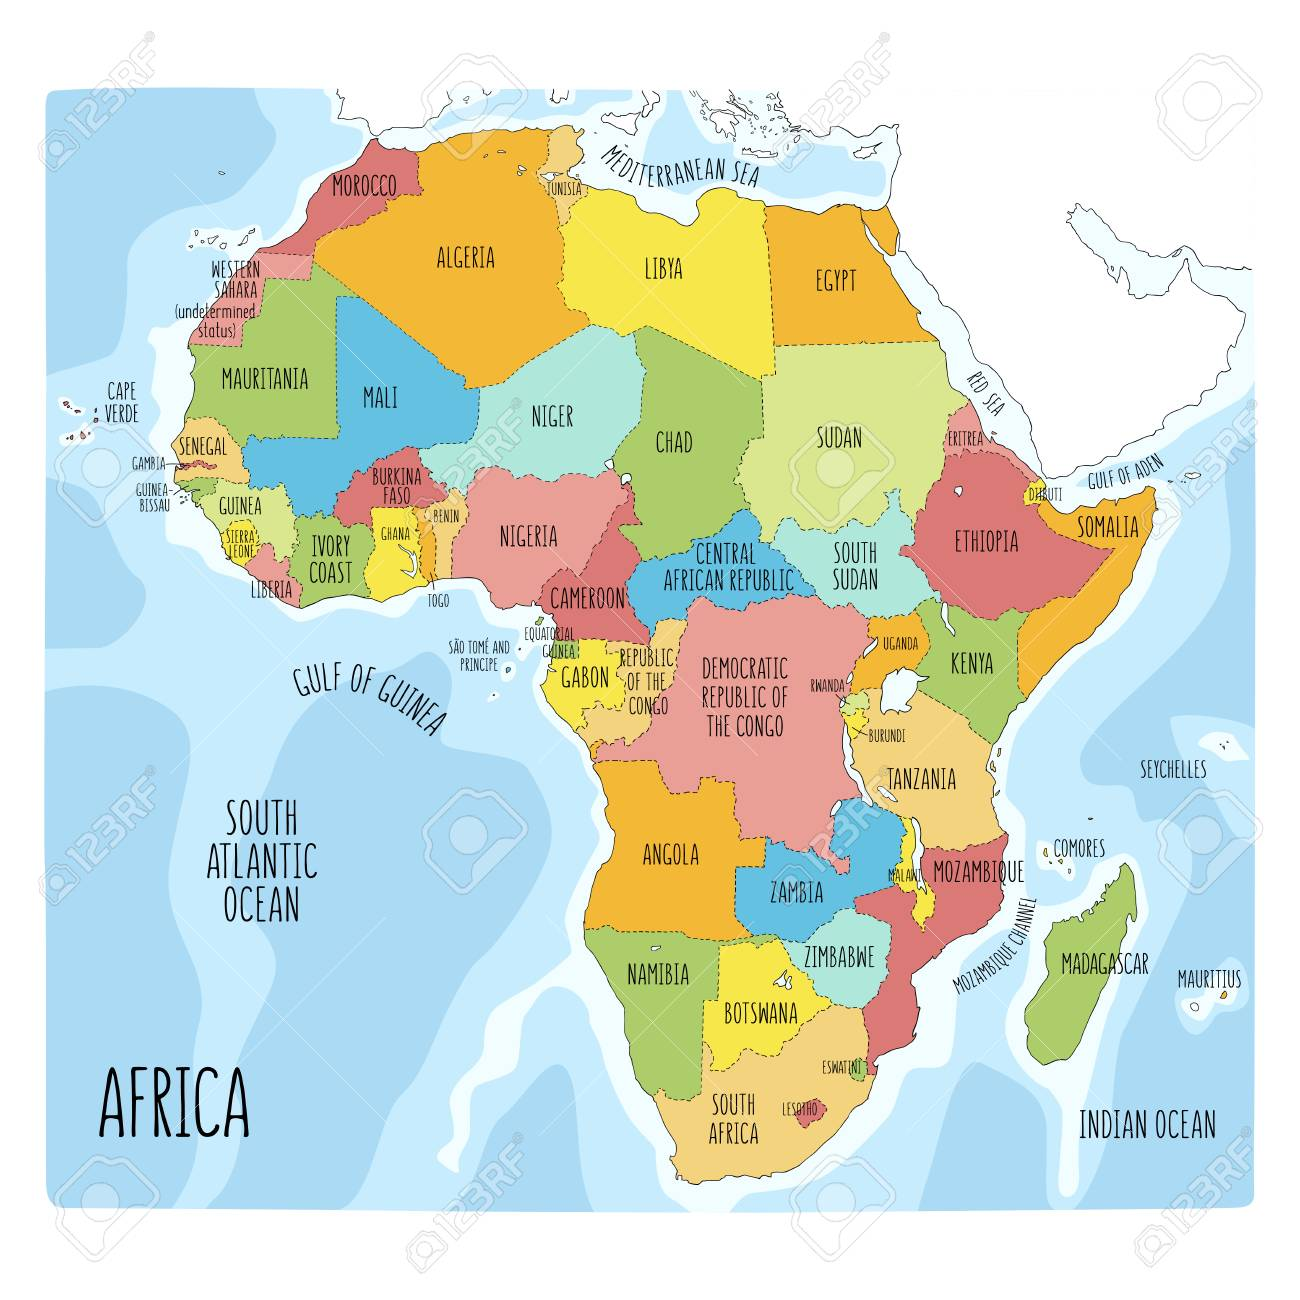 Vector Political Map Of Africa. Colorful Hand Drawn Illustration